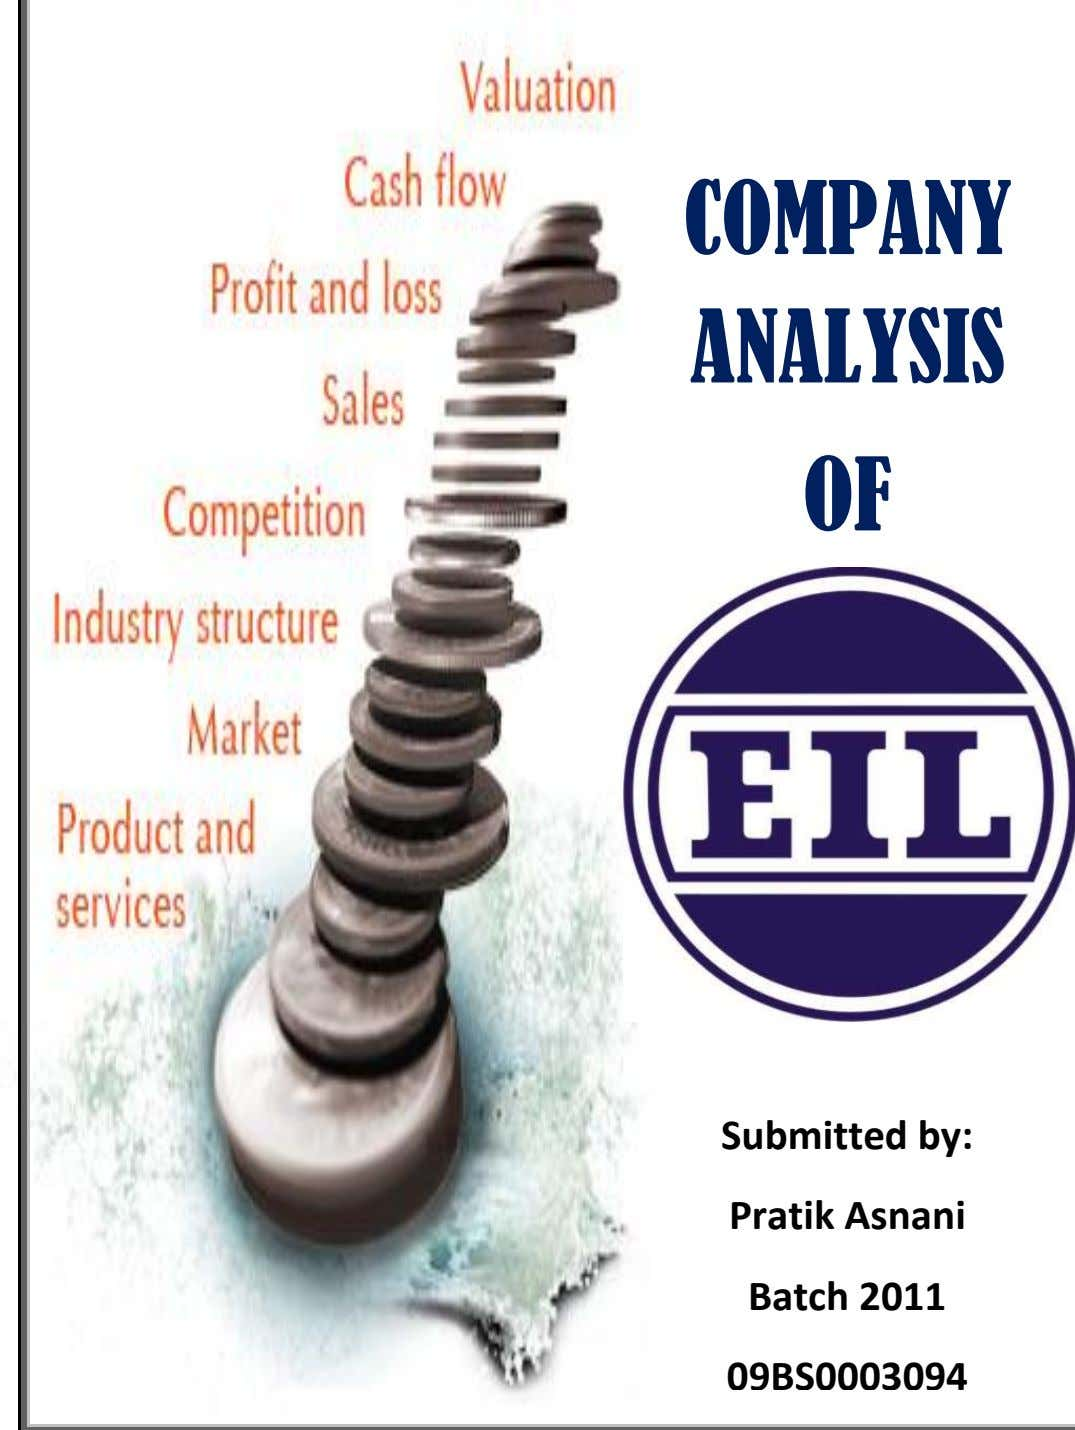 COMPANY ANALYSIS OF Submitted by: Pratik Asnani Batch 2011 09BS0003094